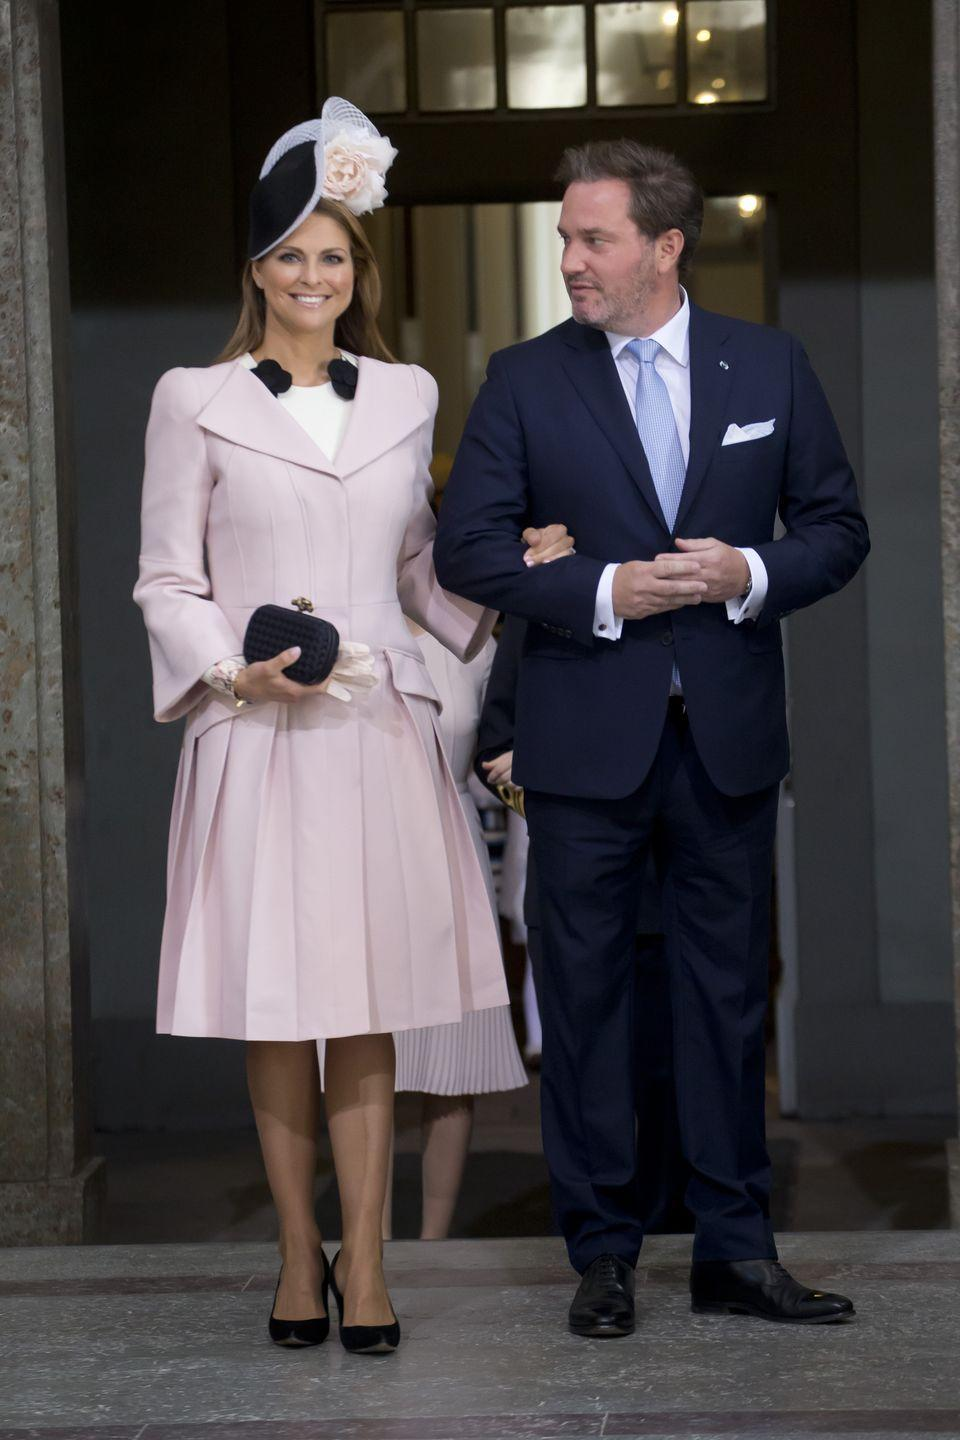 <p>In 2013, O'Neill, a British financier, married Princess Madeleine of Sweden, who spent time in New York City. Her future husband was working on Wall Street. </p>